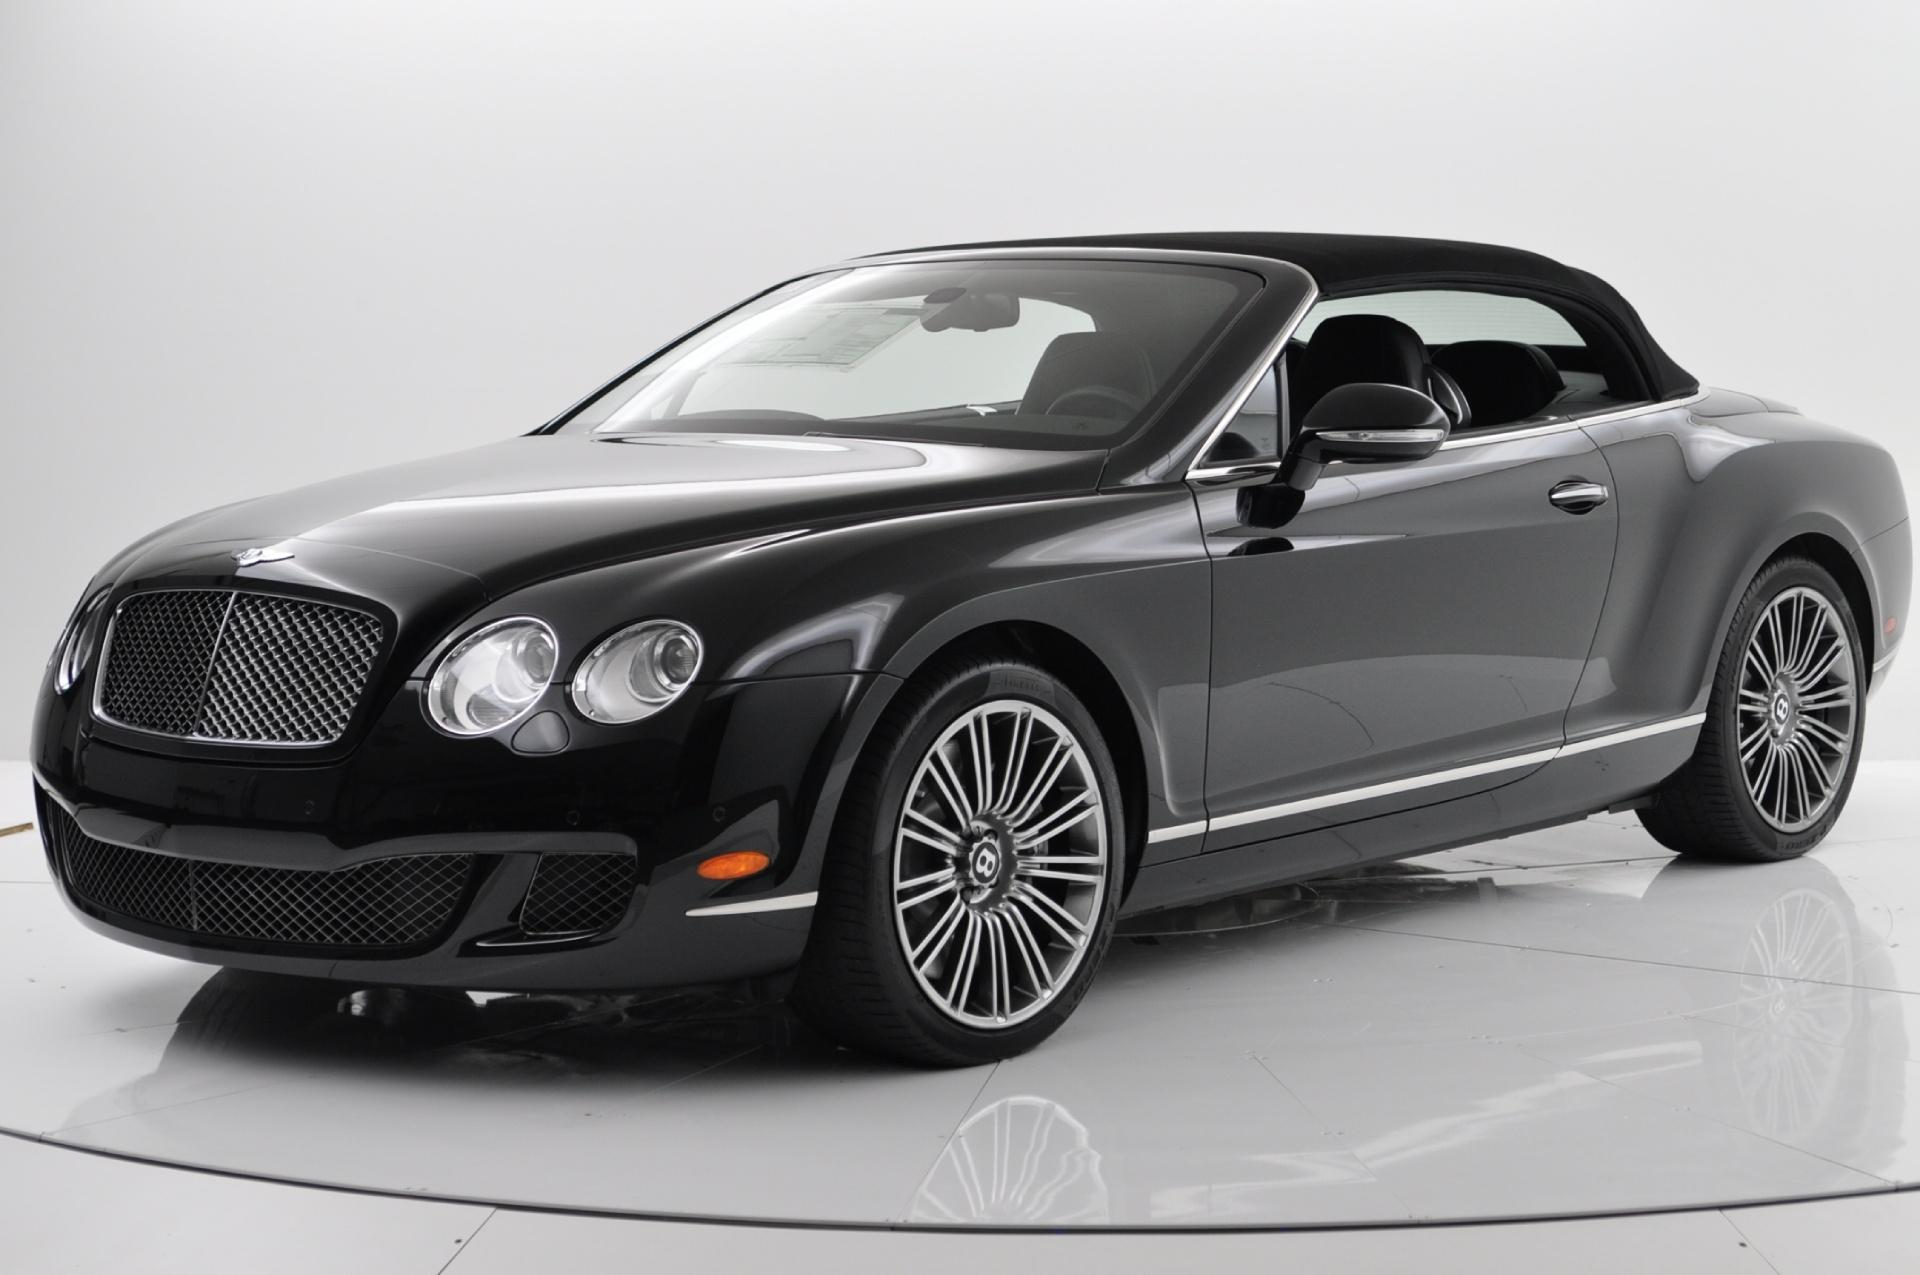 used 2010 bentley continental gt speed convertible for sale 129 880 fc kerbeck bentley. Black Bedroom Furniture Sets. Home Design Ideas